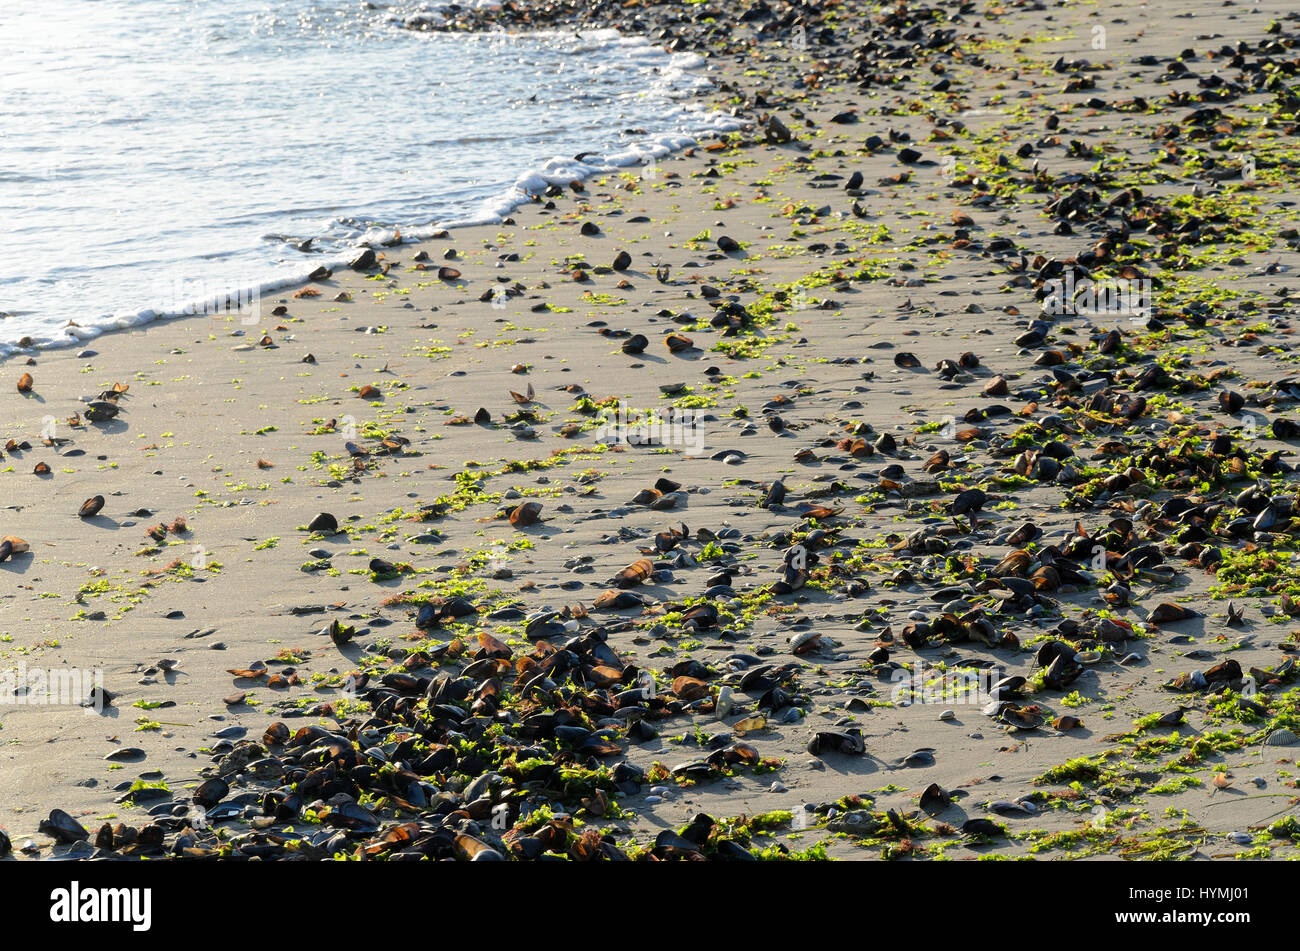 Sand beach covered with washed up seashells and seaweeds - Stock Image